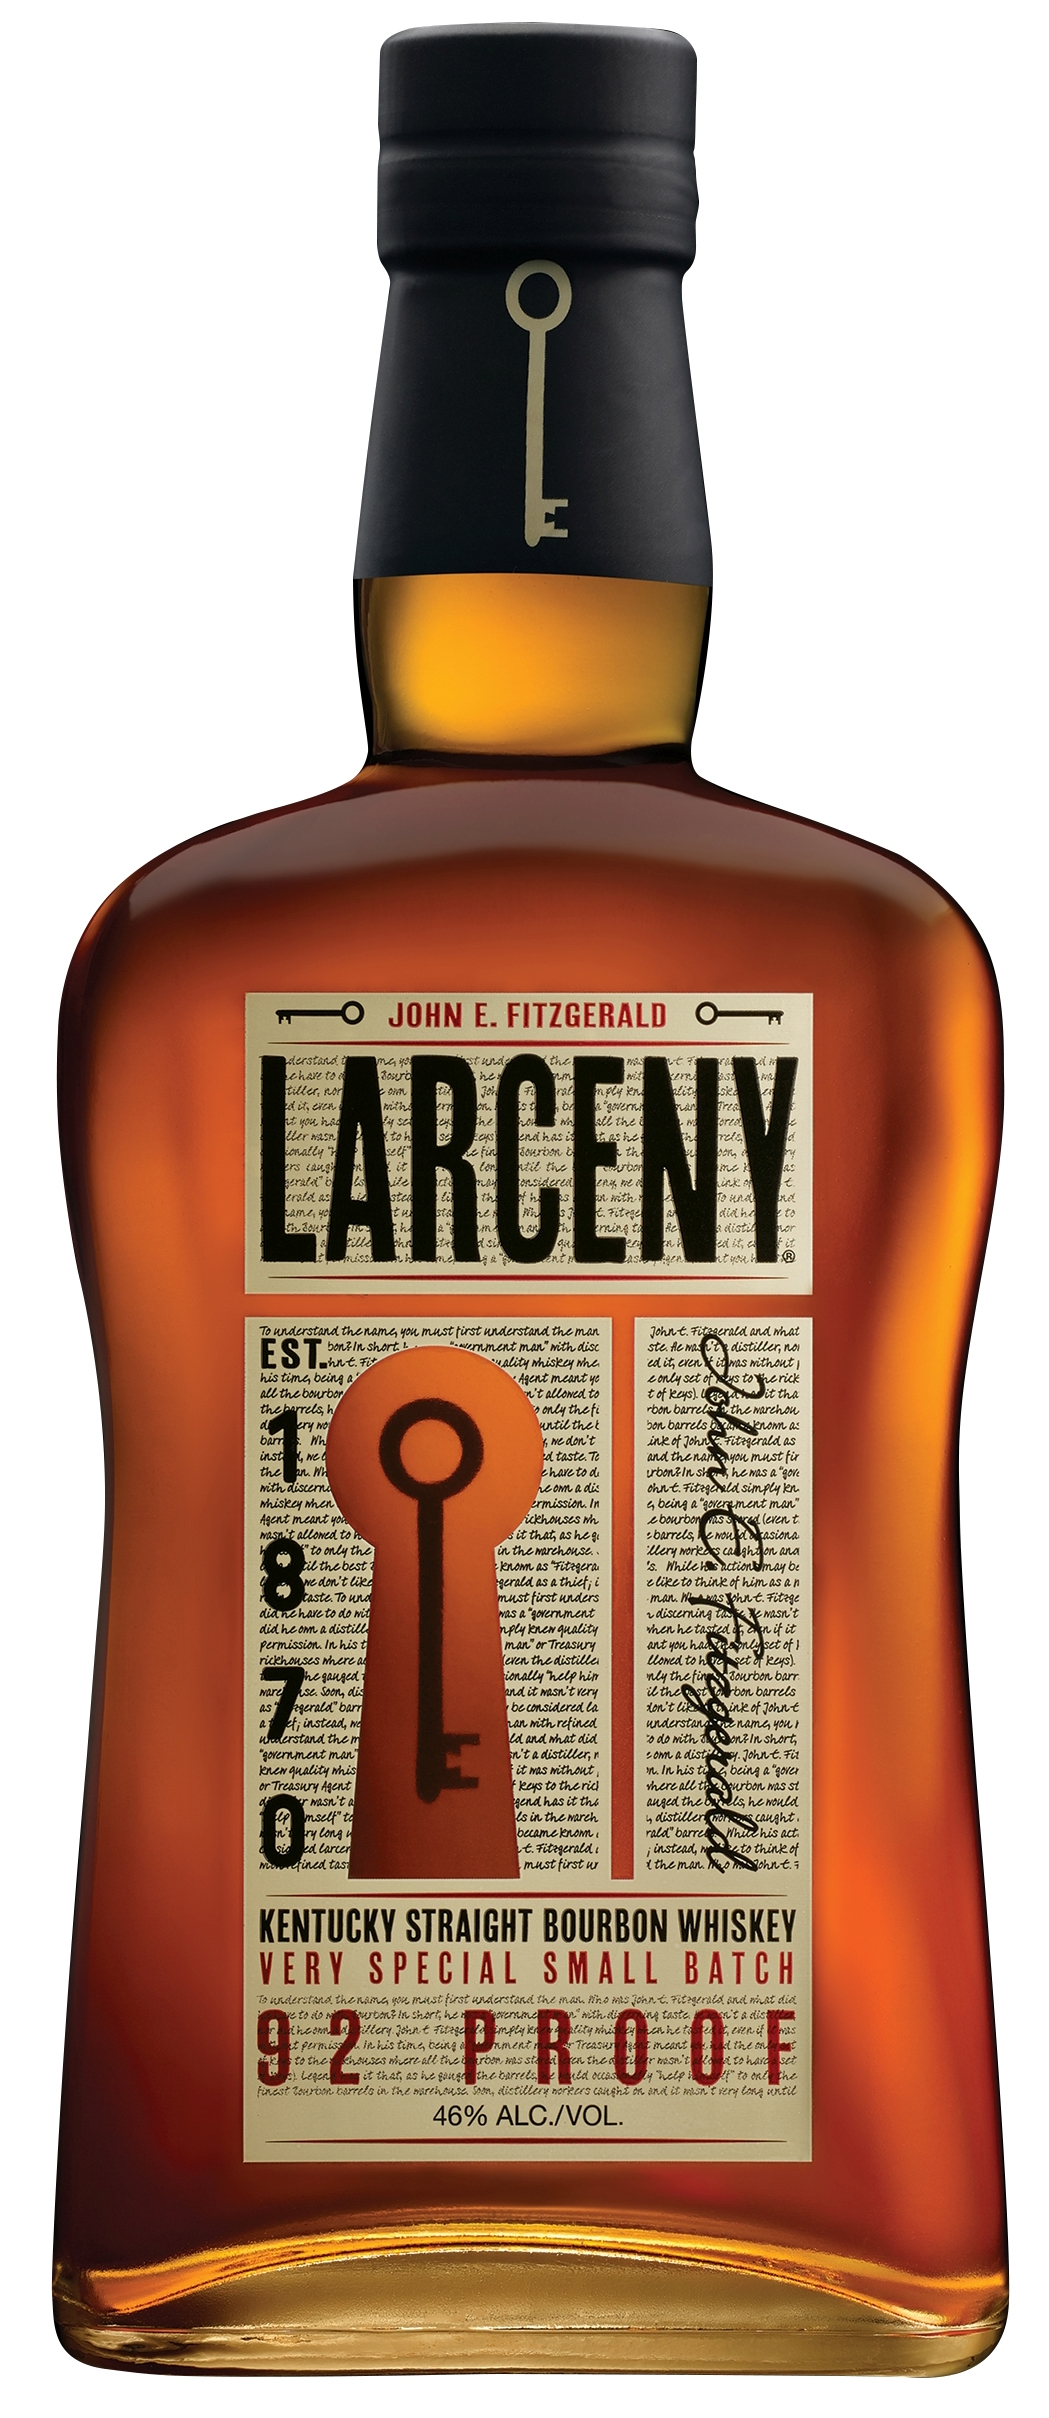 Larceny: Ein legendärer Small Batch Bourbon Whiskey aus Kentucky